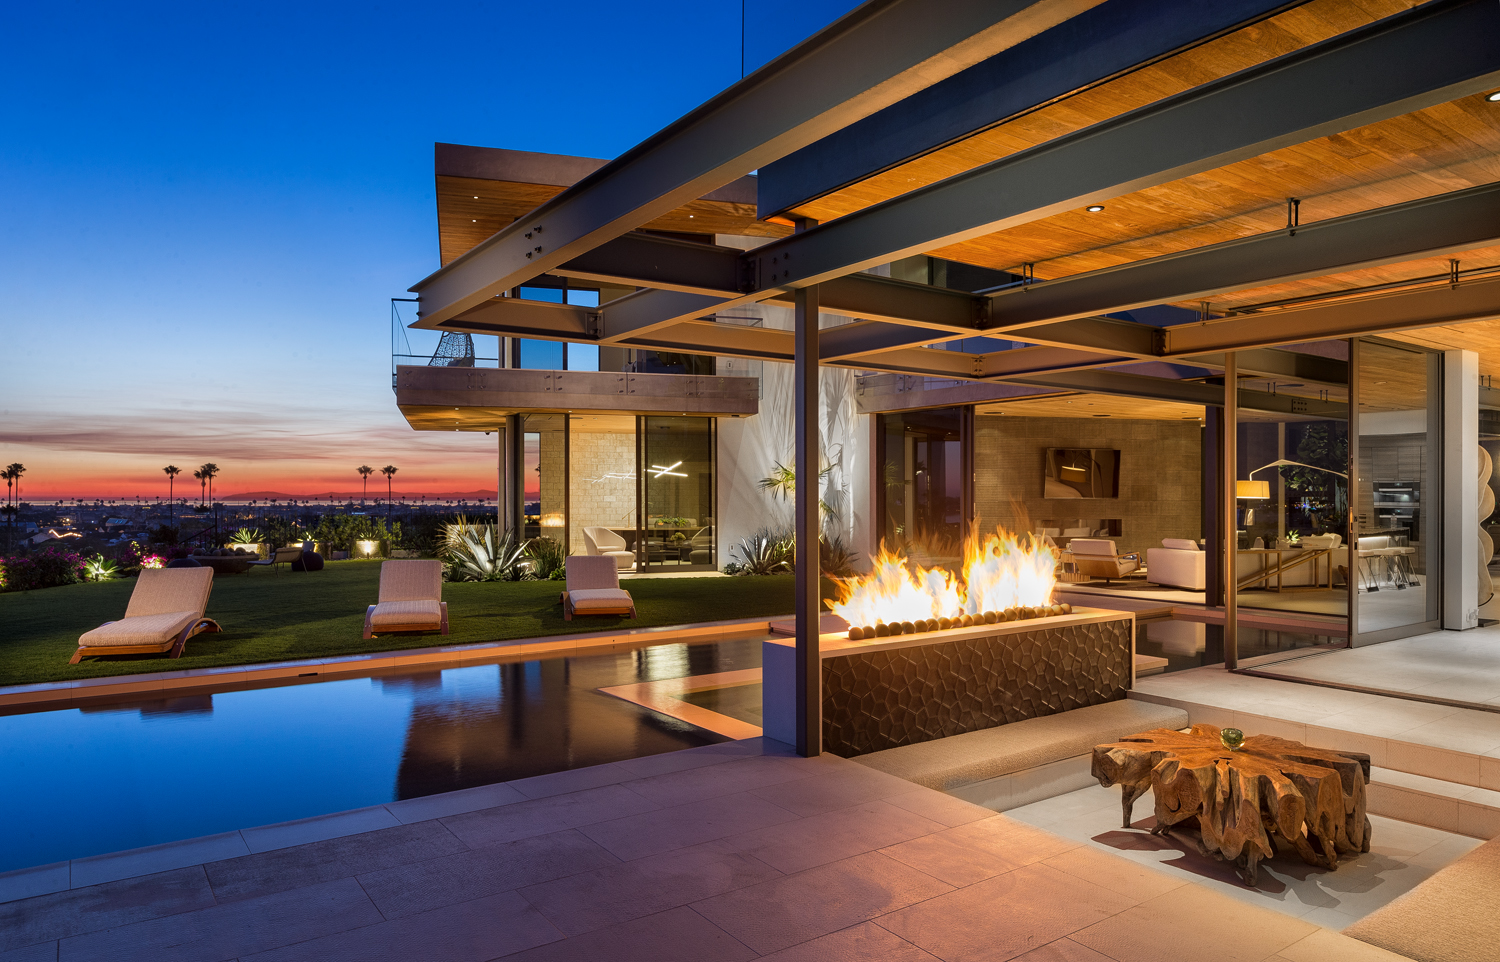 emil kara, architectural photography, newport beach architectural photographer, luxury home photographer, rob giem, real estate photographer